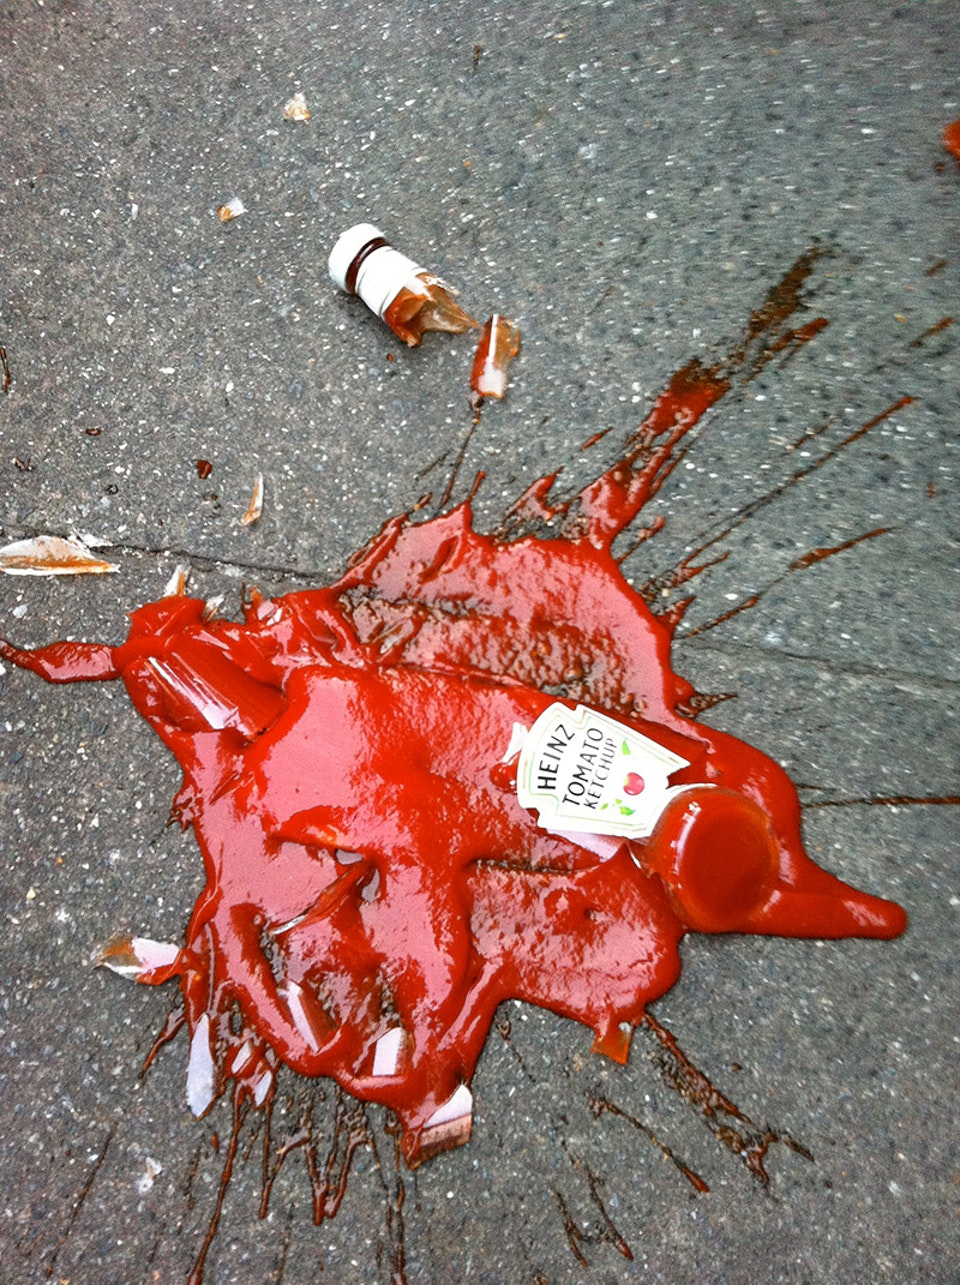 Death by ketchup